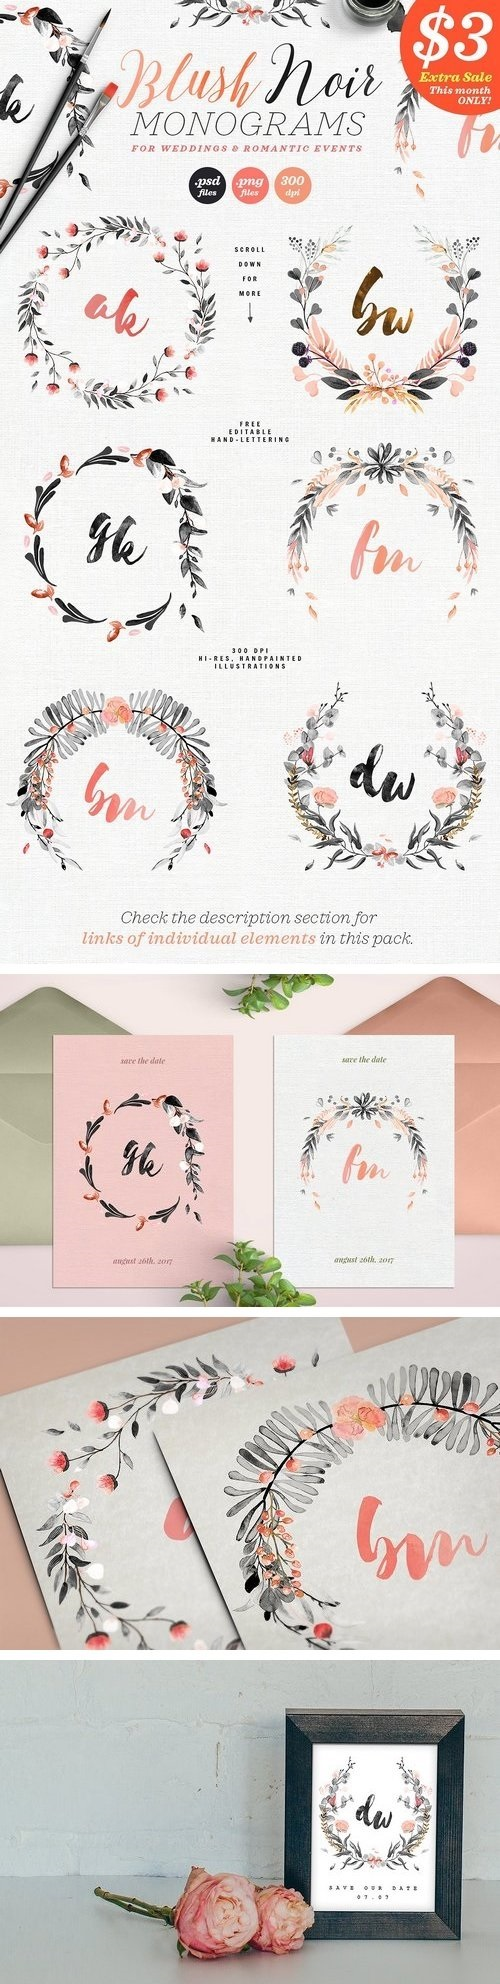 6 Blush Noir Wedding Monograms IV - 1511093